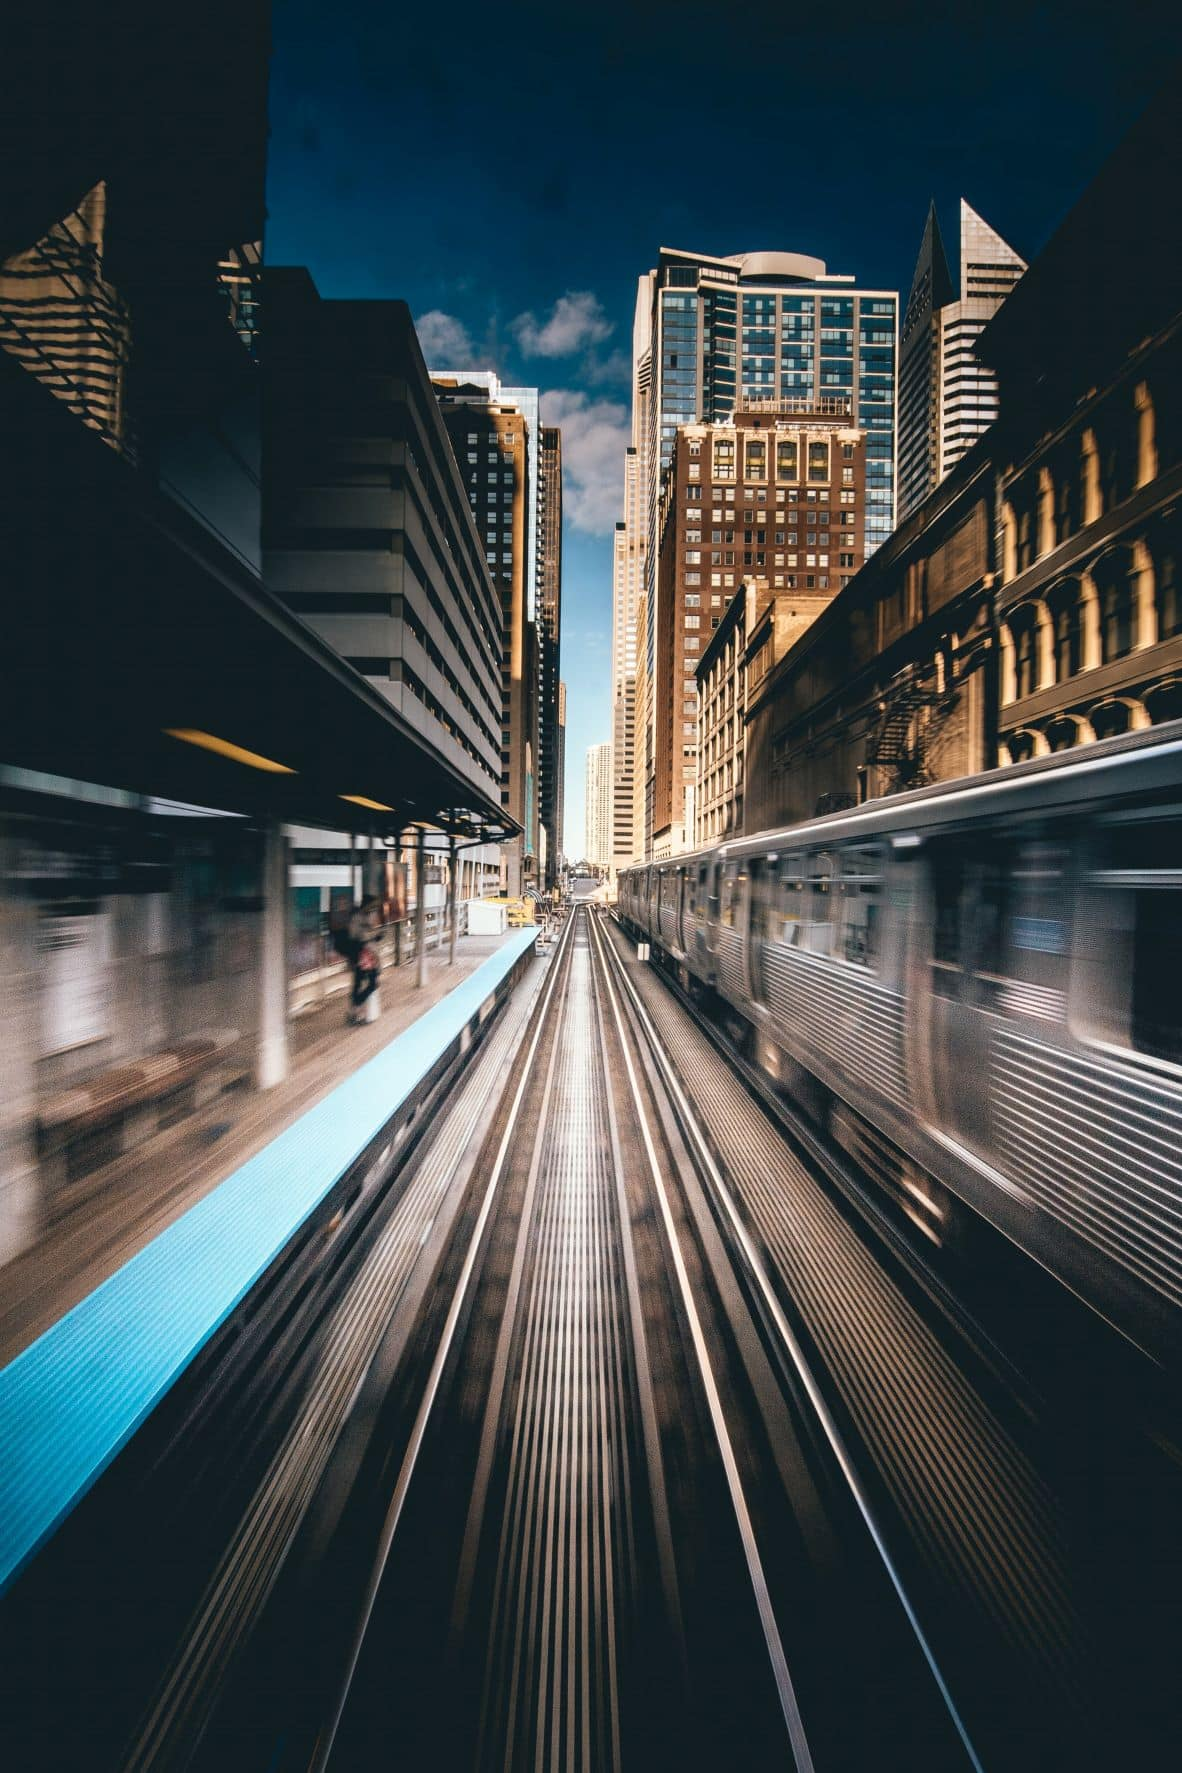 Blue Line in Chicago